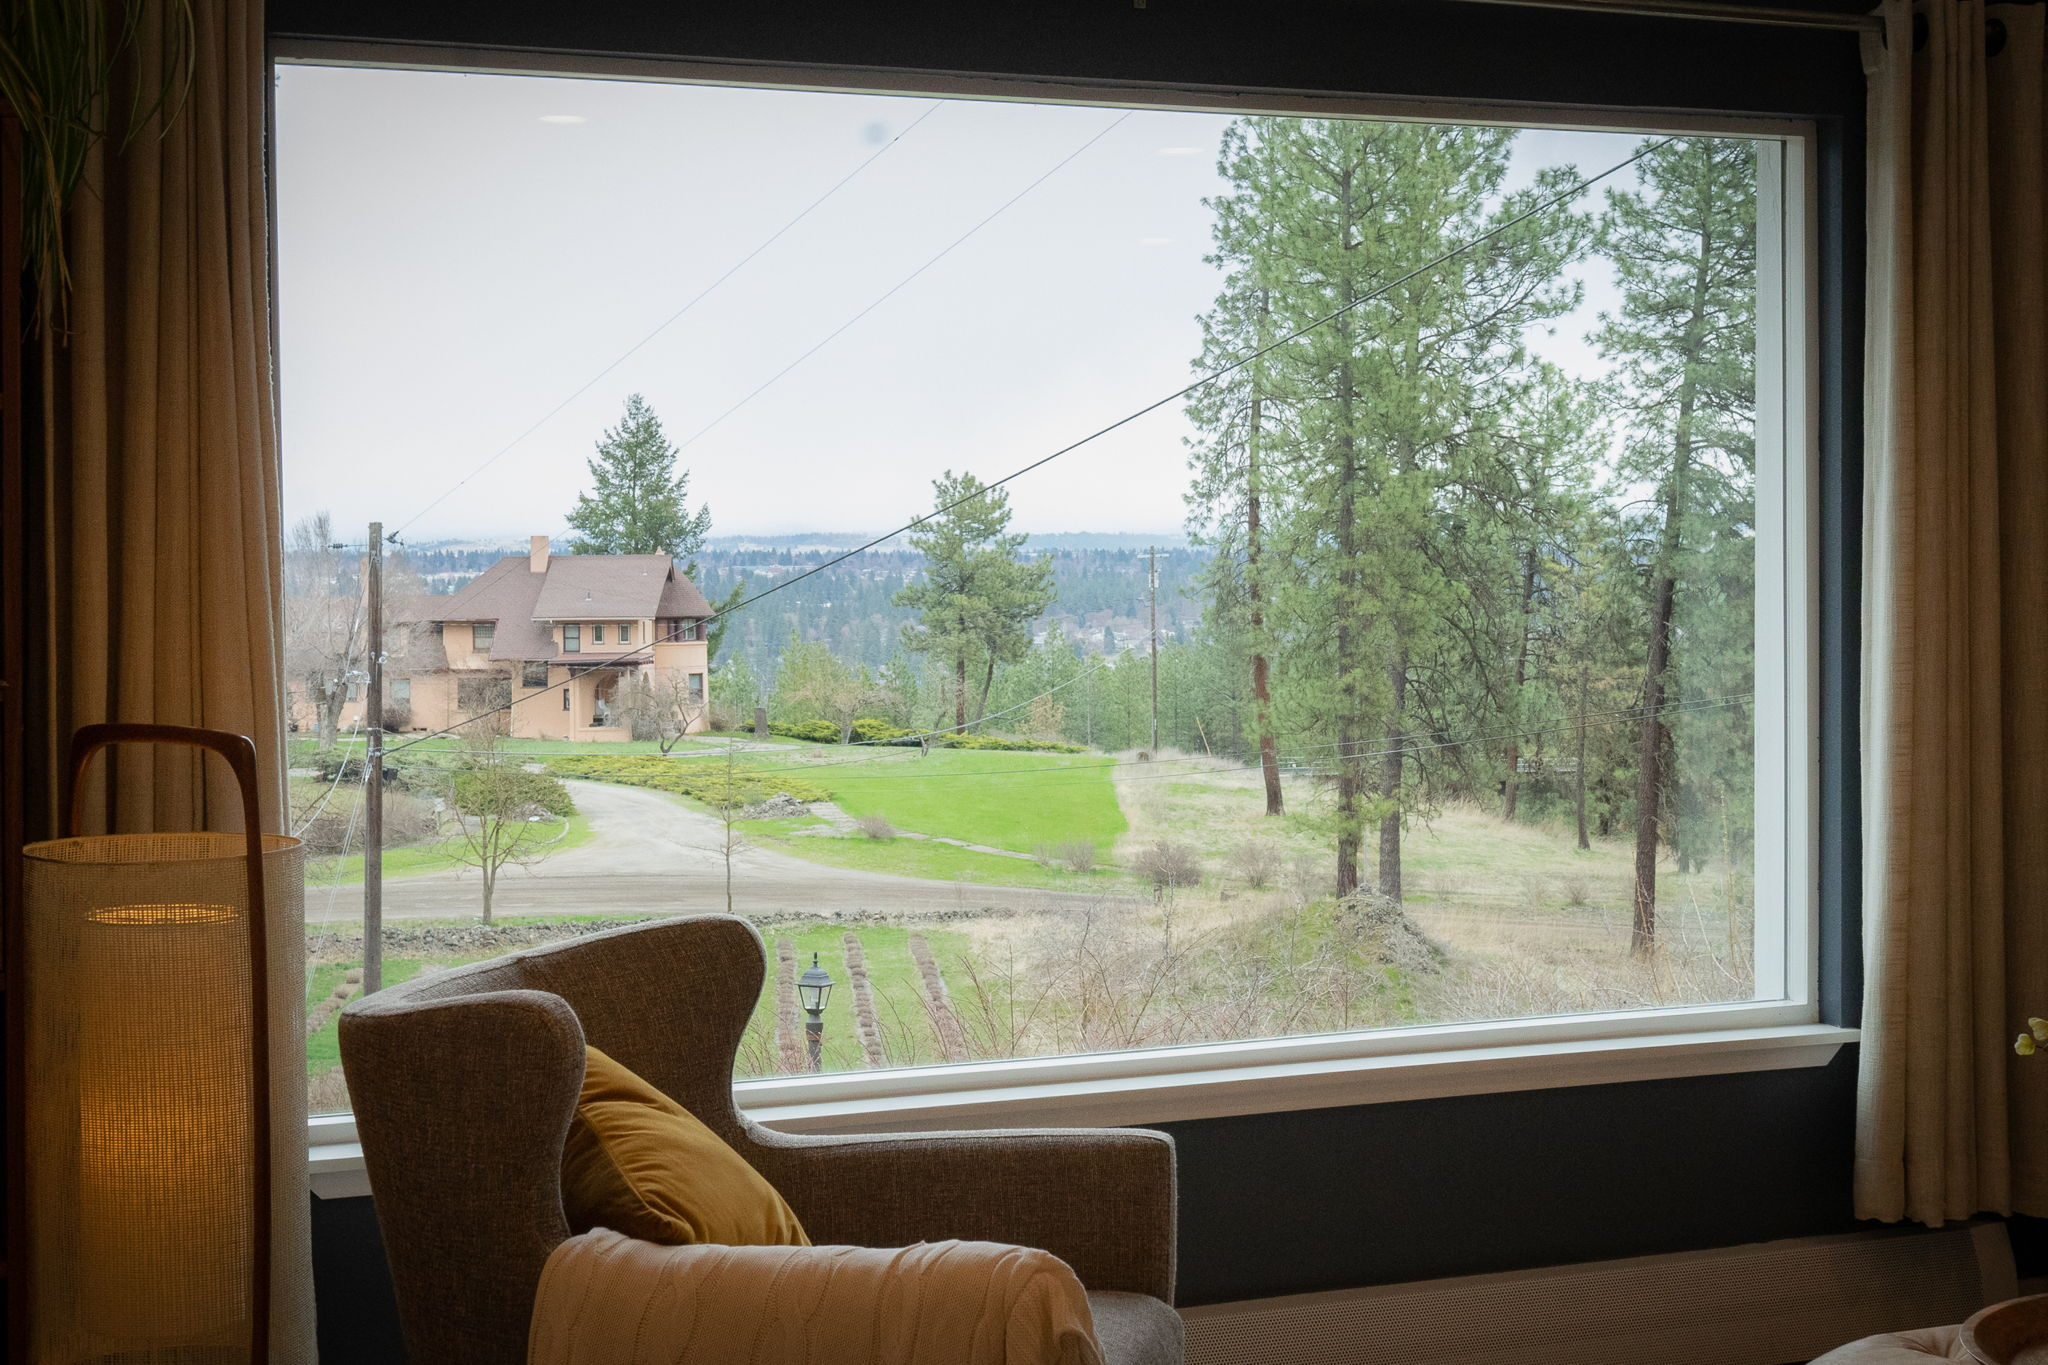 Views of the acreage and Spokane facing east